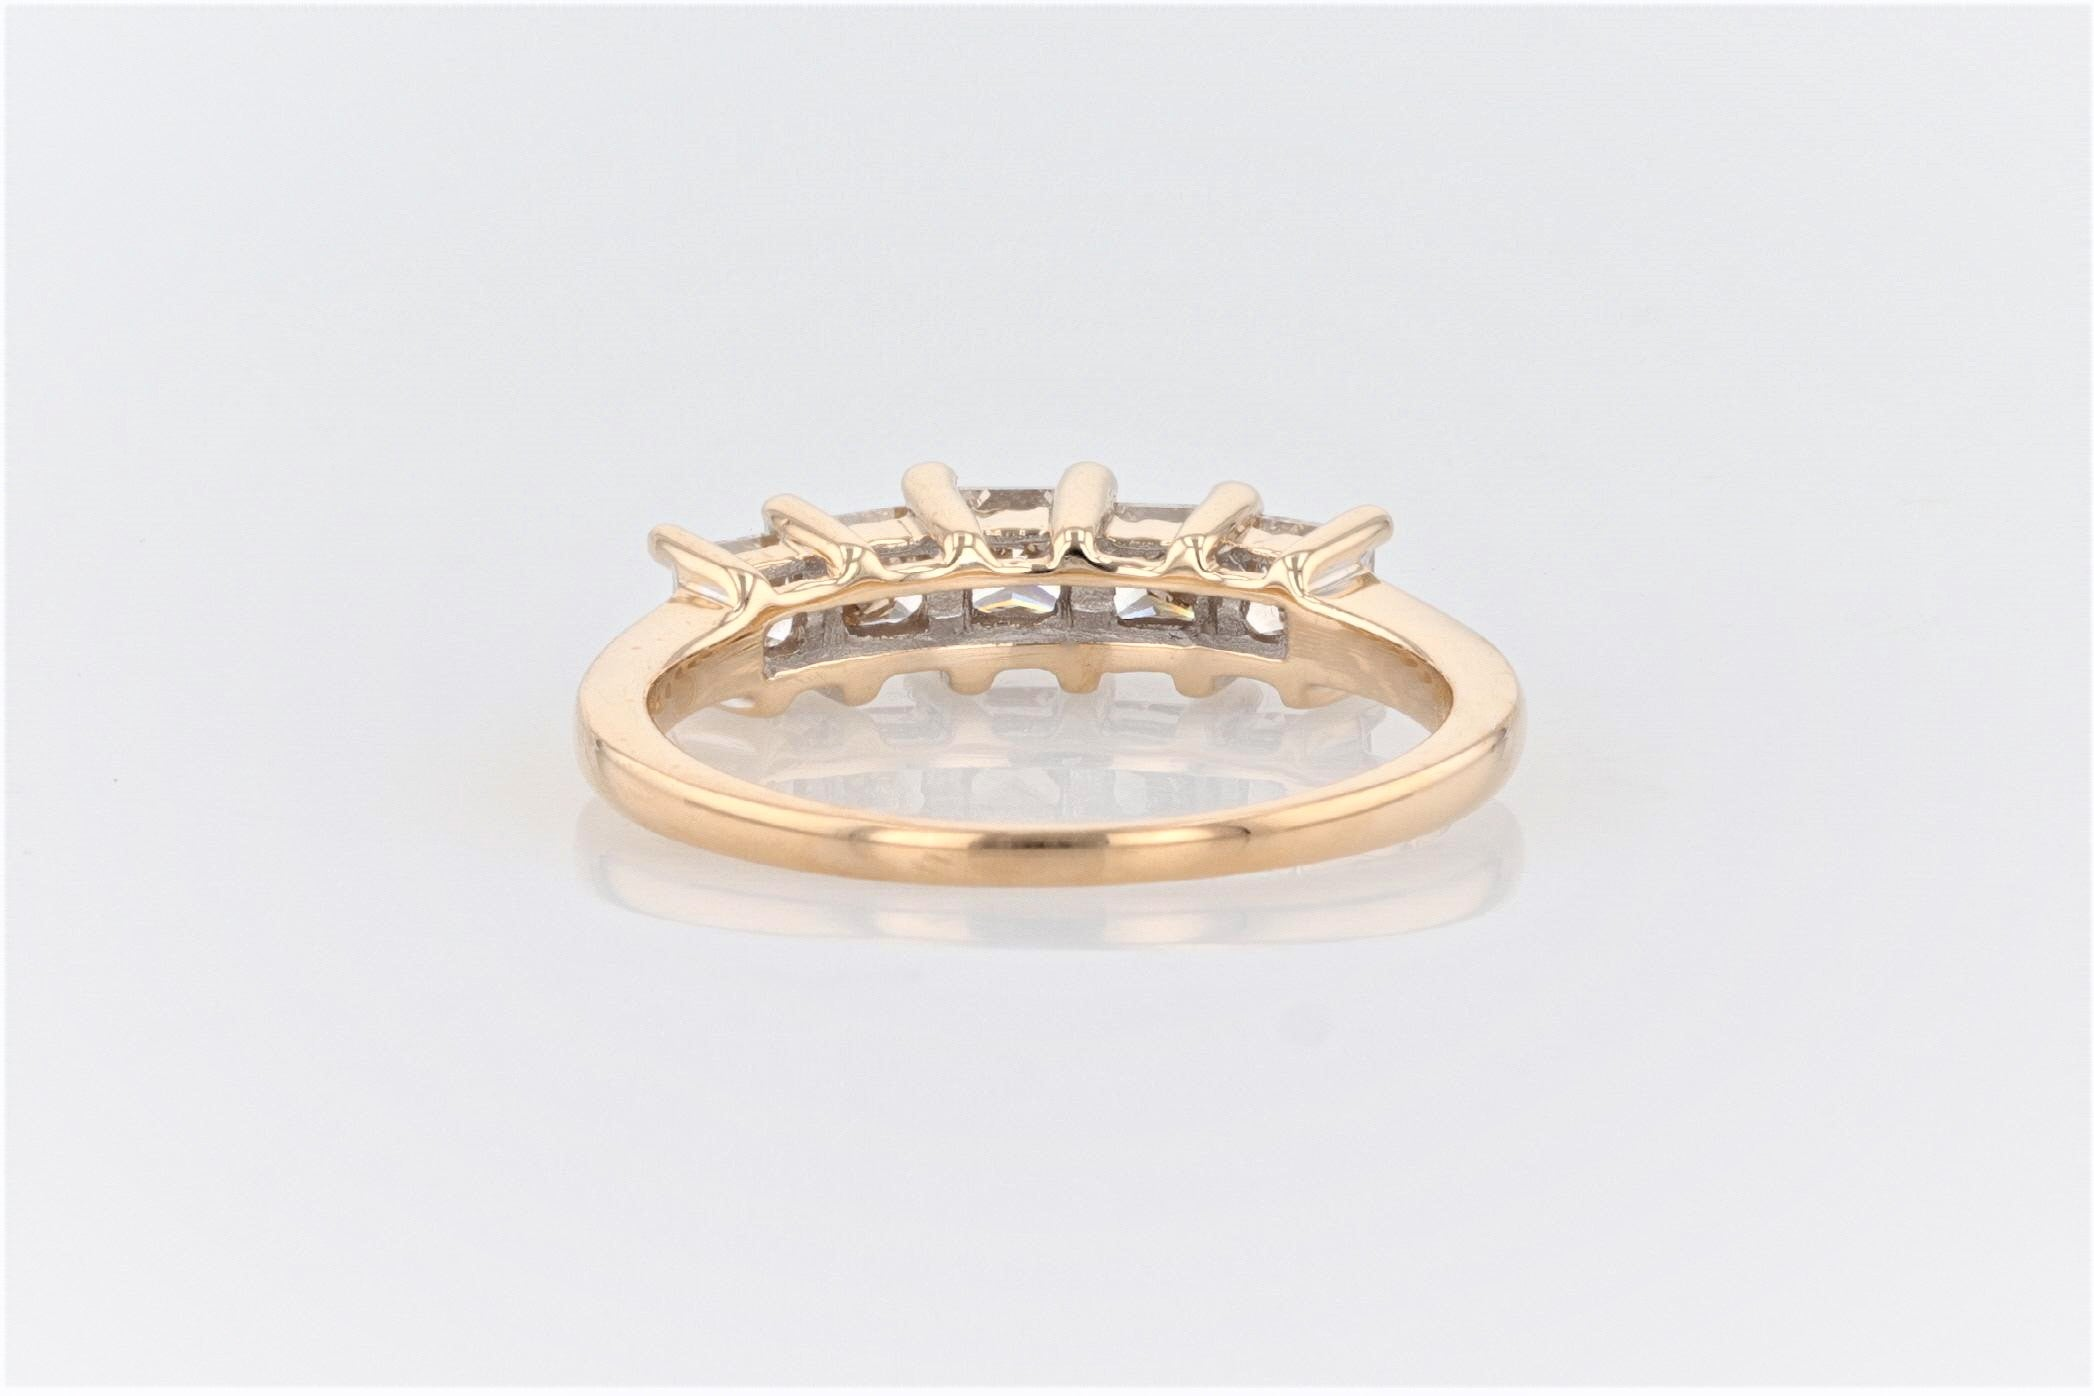 14K Women's Yellow Gold (Stamped) Shank Dress Ring